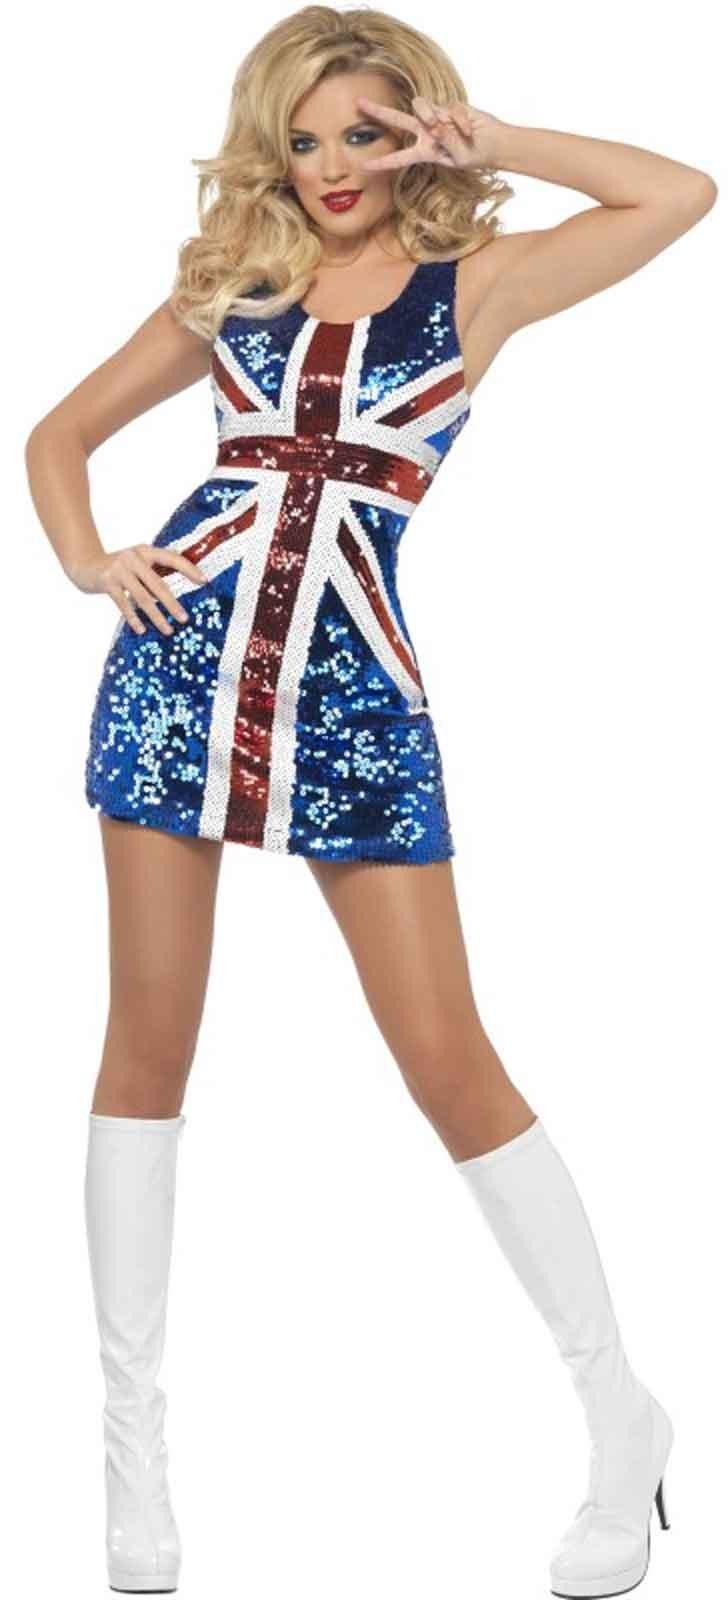 All That Glitters Rule Britannia Union Jack Dress Costume from Buycostumes.com